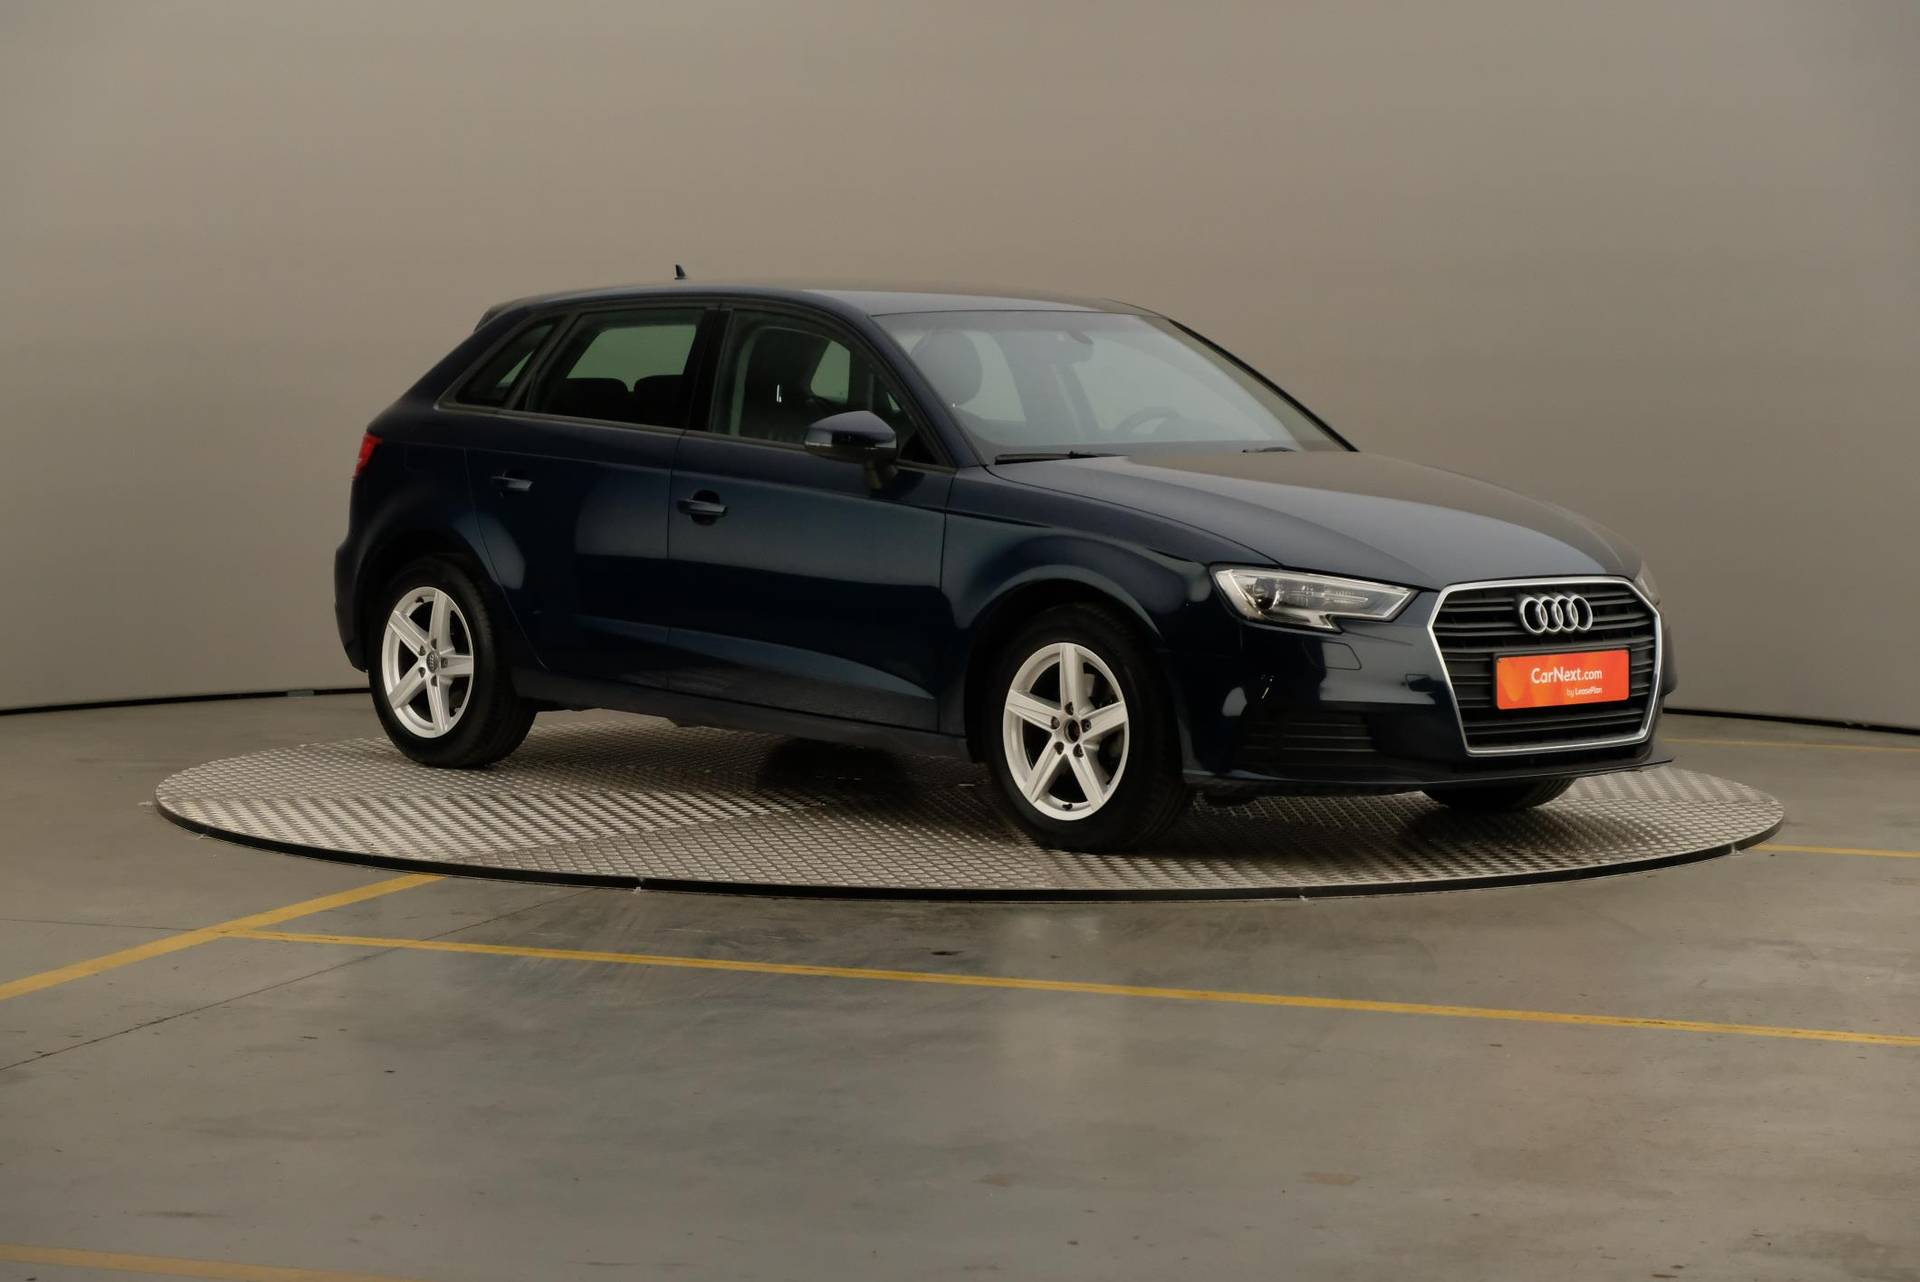 Audi A3 1.6 TDi Pack Intuition Plus Euro6, 360-image27